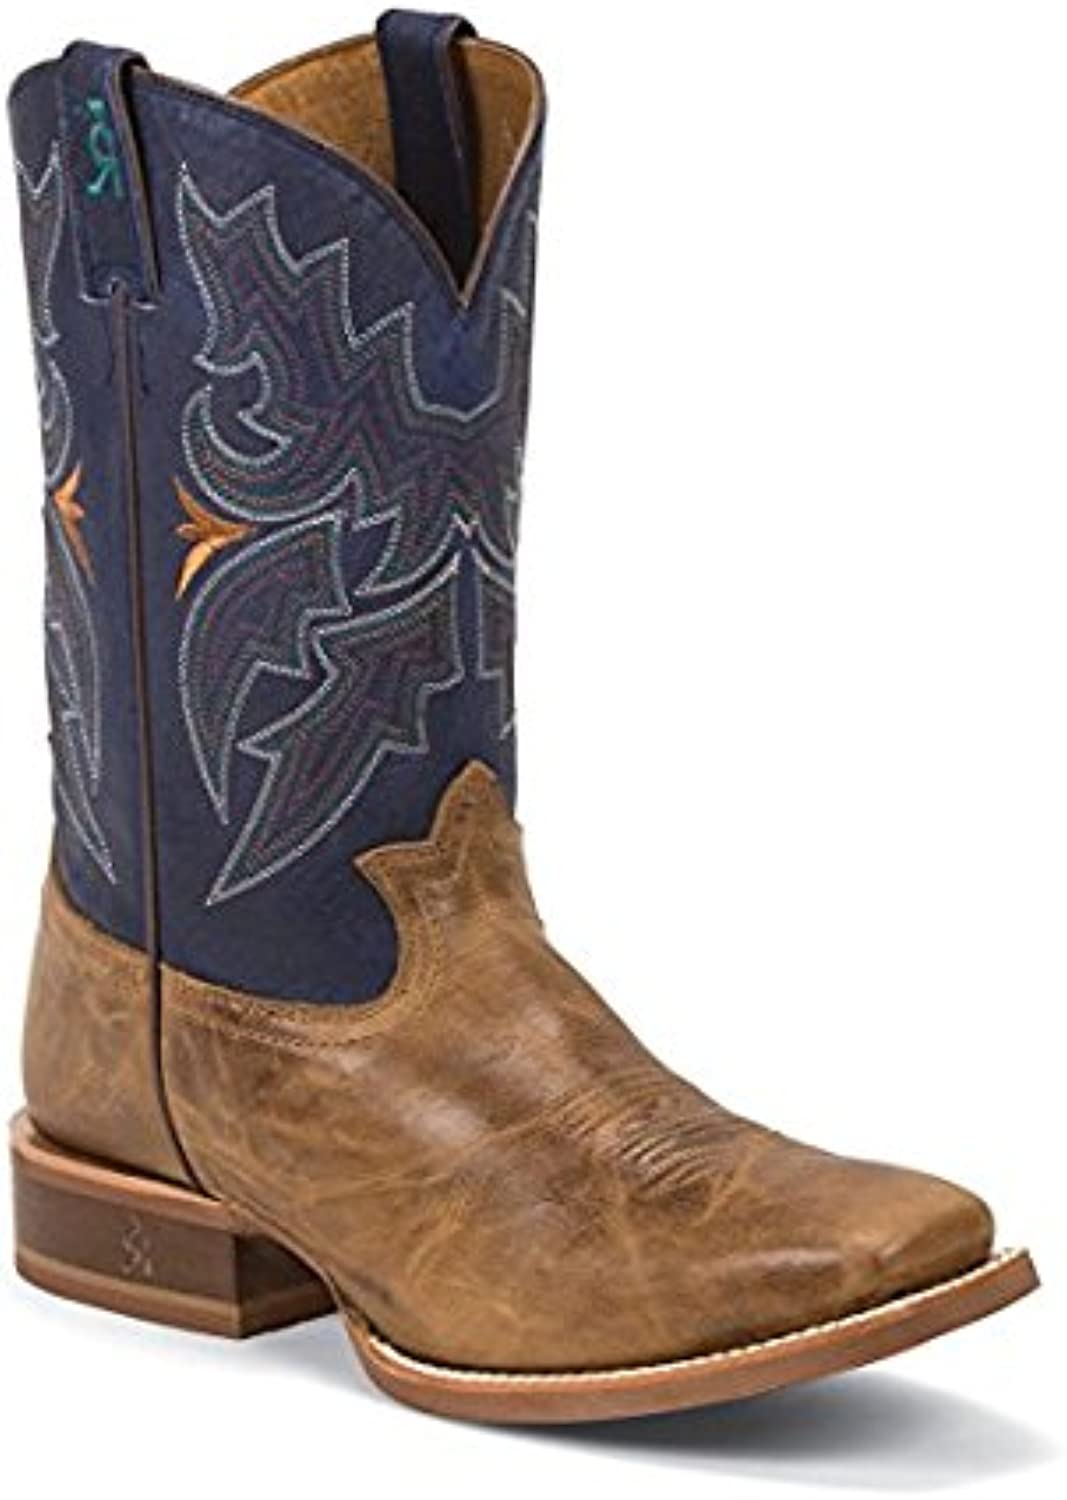 Tony Lama Men's Socorro bluee 11  Height (3R1128)   Foot Honey Sierra   golds Tans Cowboy Leather Boot   Handcrafted in The USA